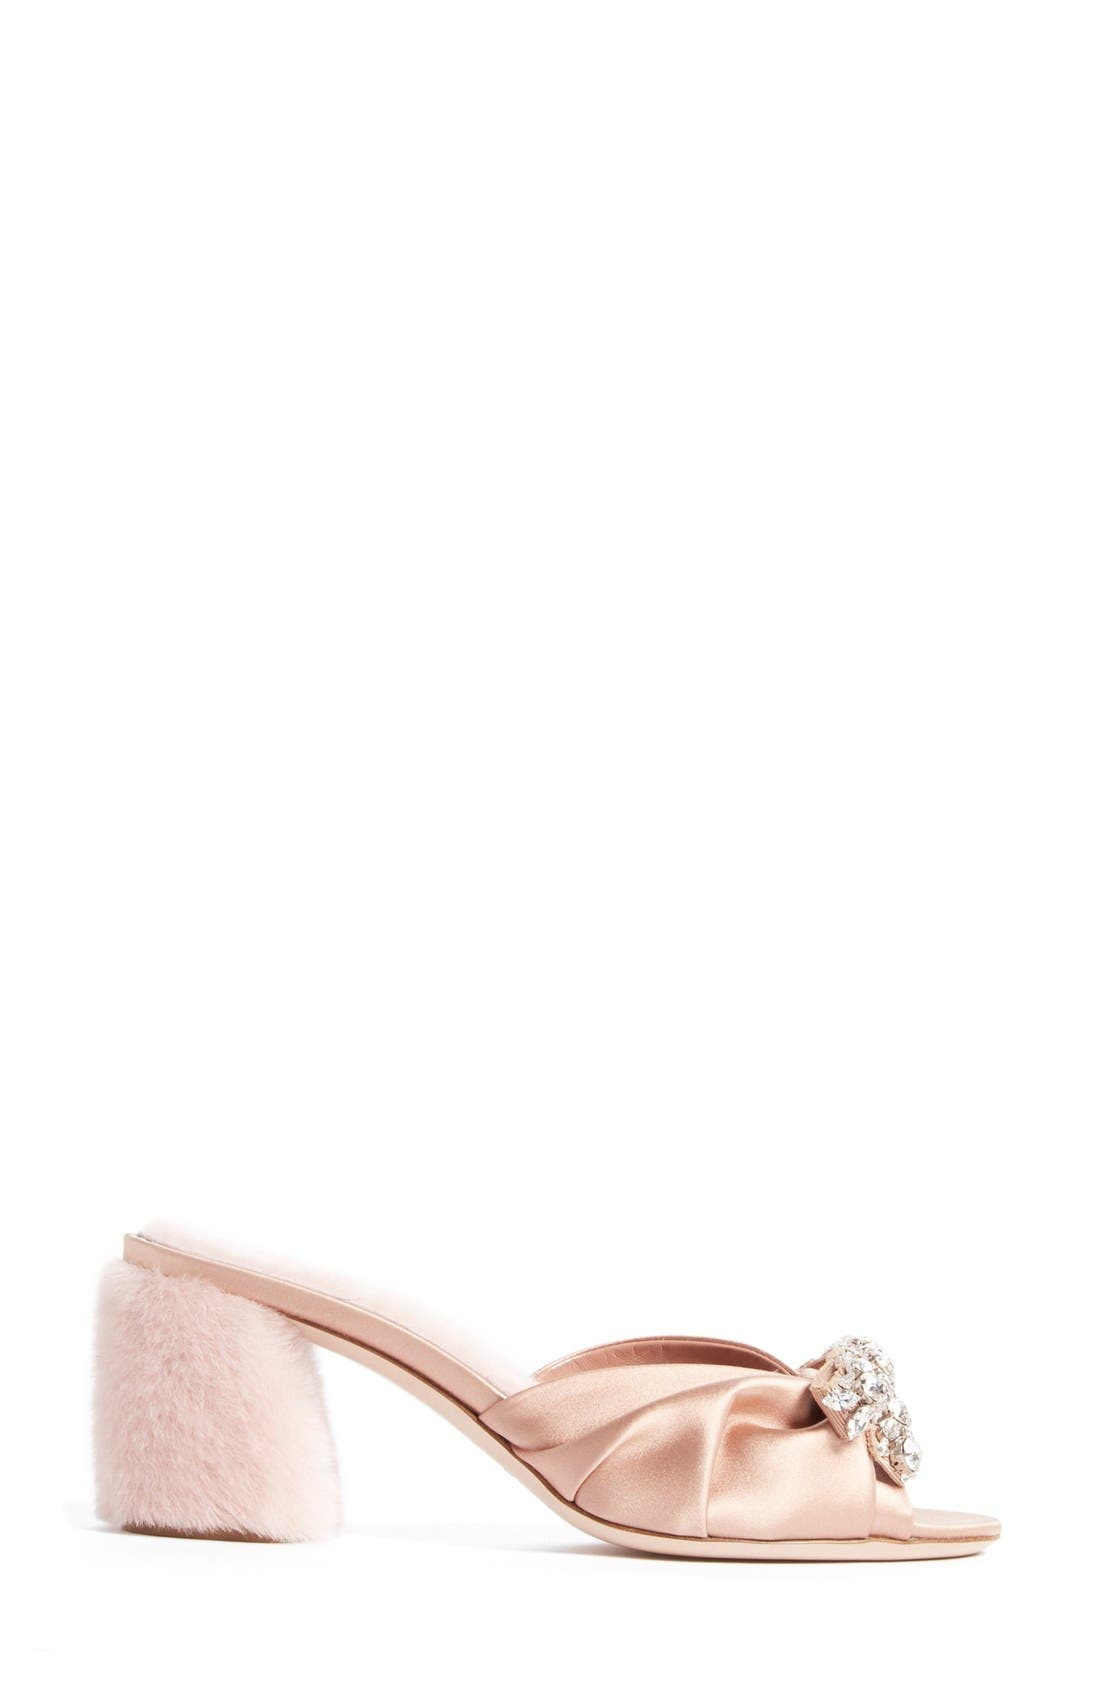 Alternate Image 3  - Miu Miu Crystal Embellished Slide Sandal (Women)